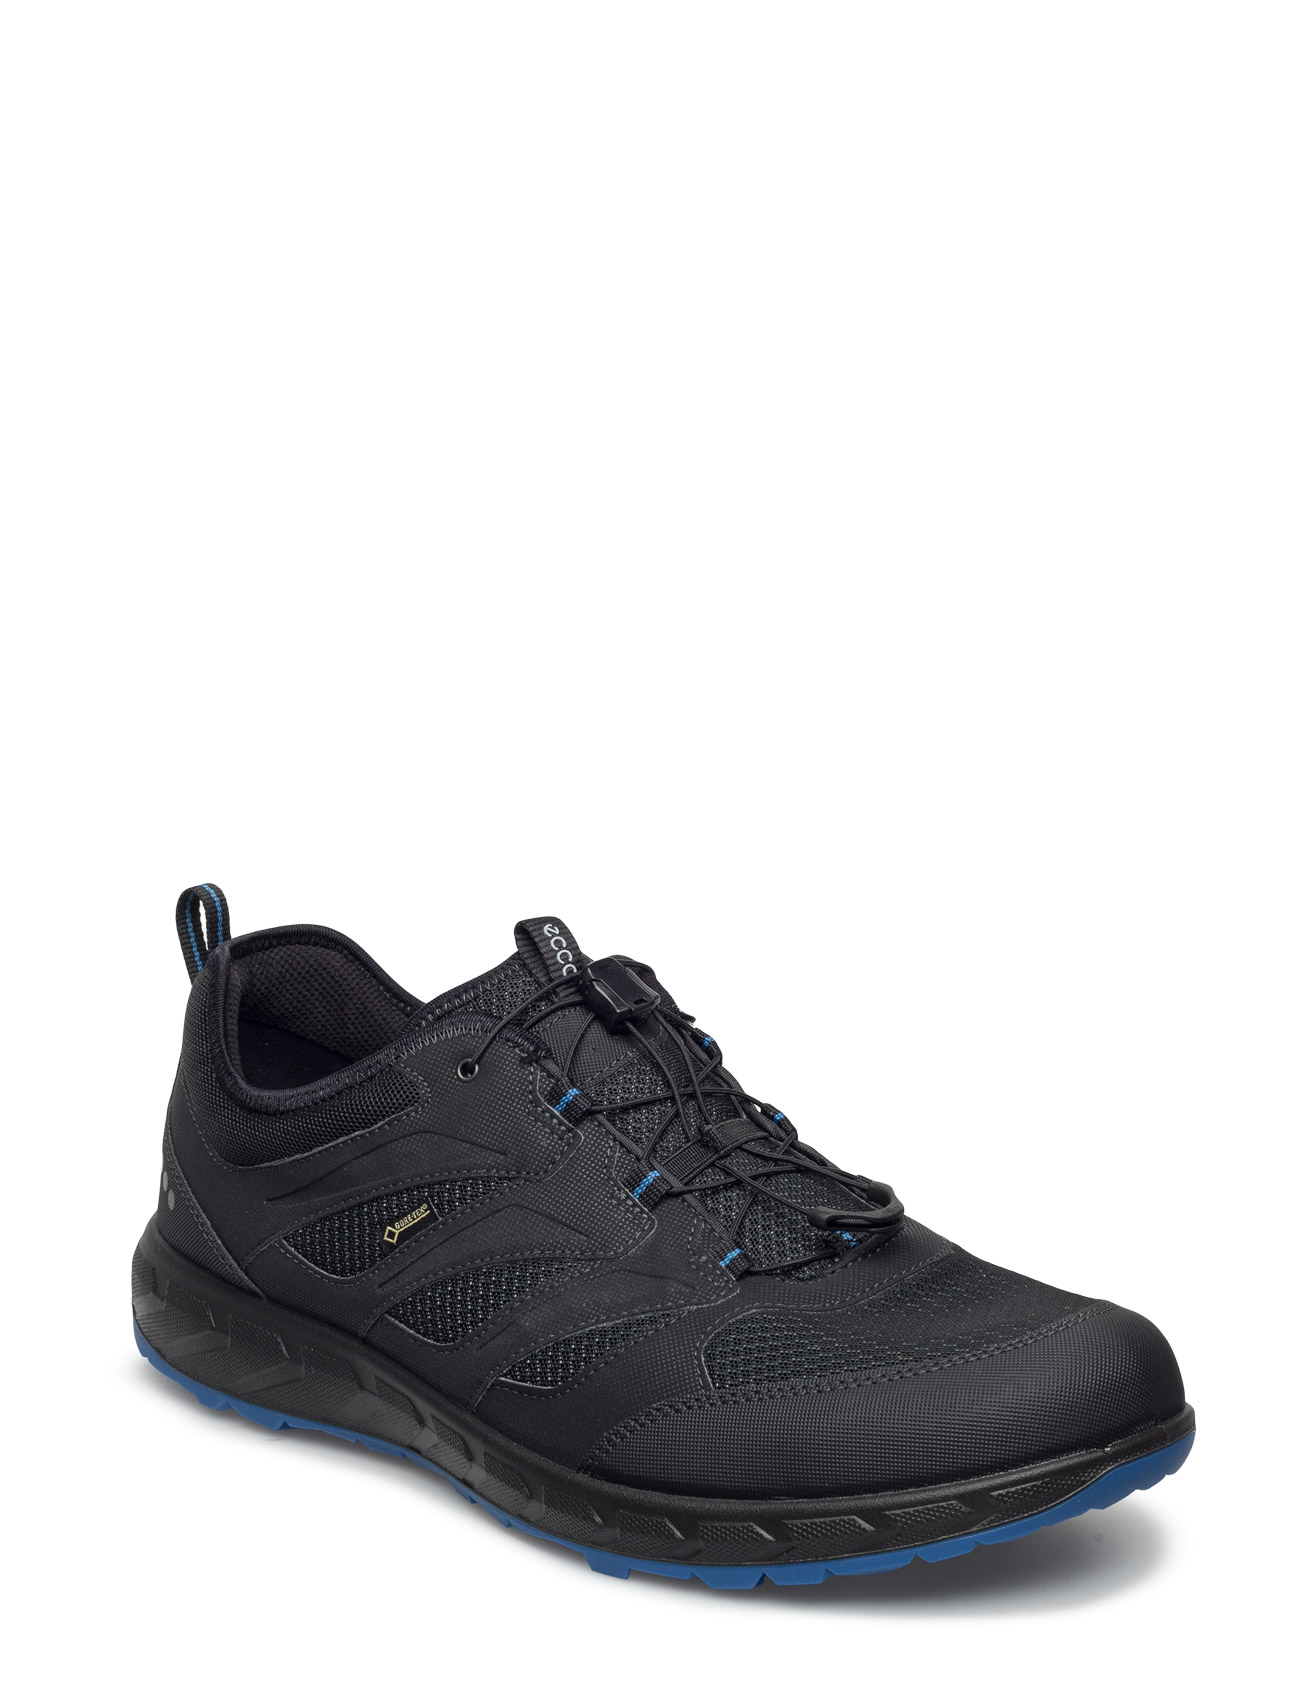 Terratrail Men'S ECCO Sneakers til Herrer i